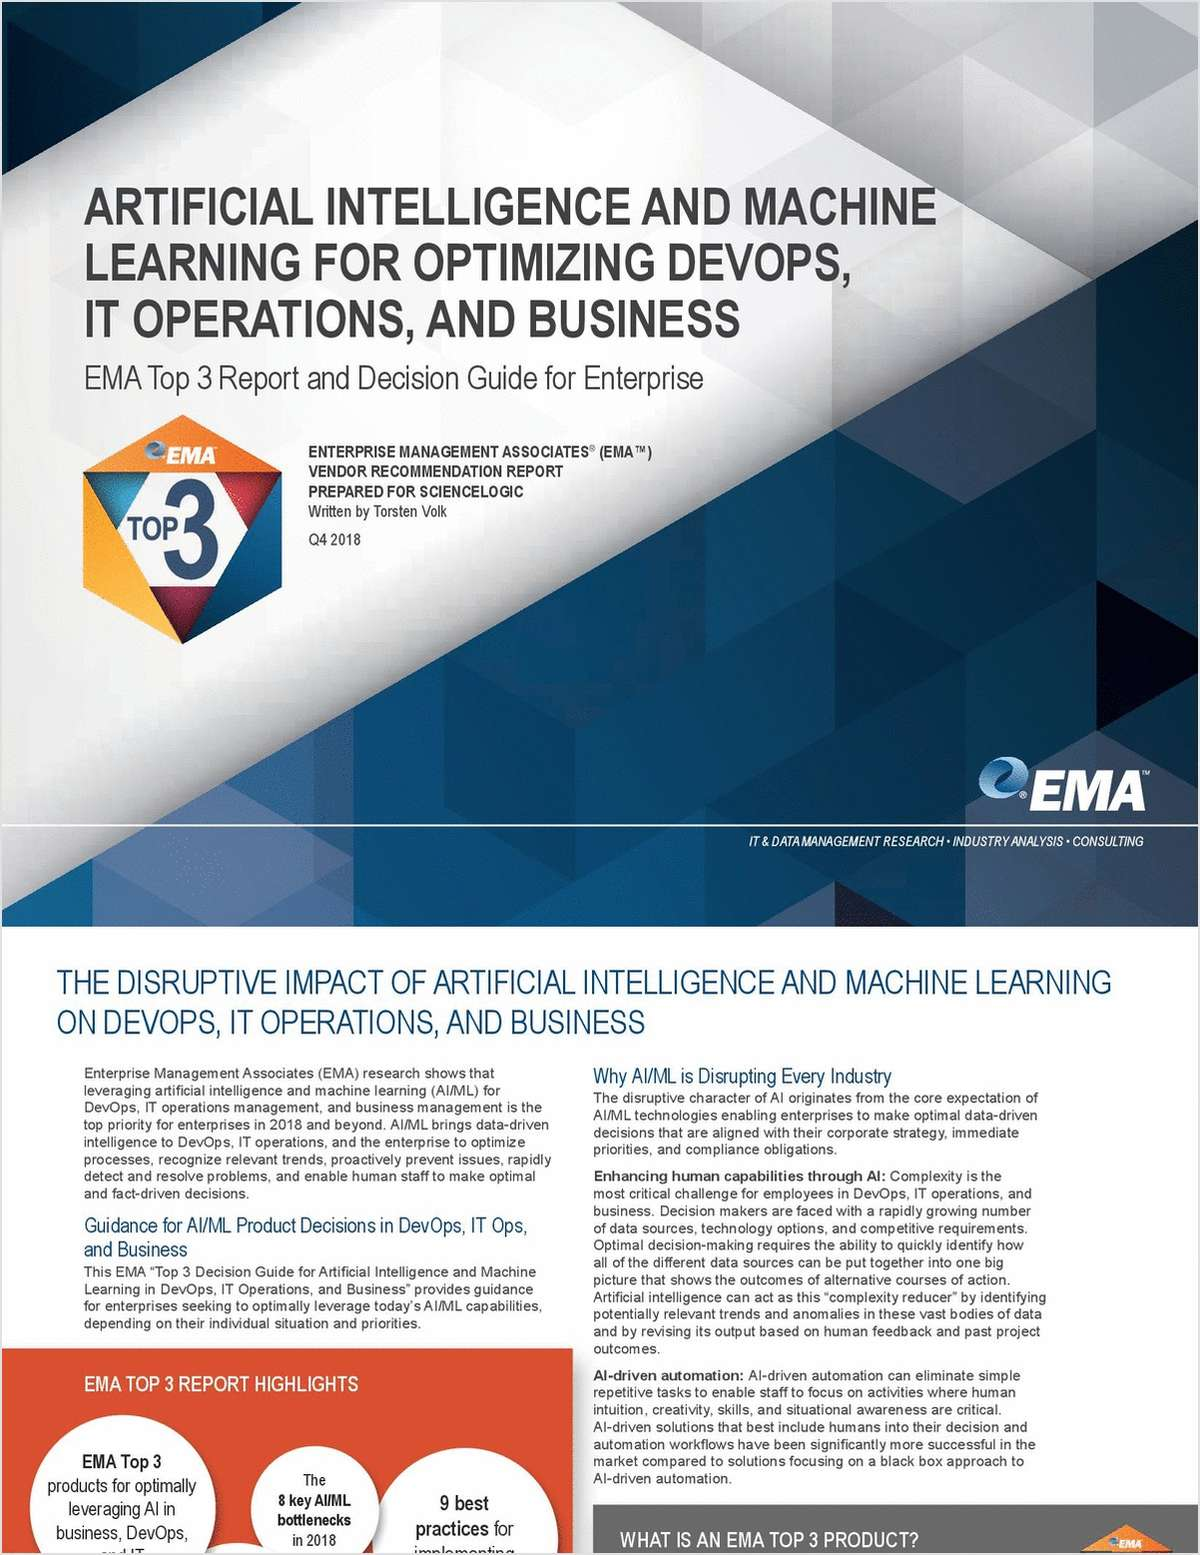 Top 3 Decision Guide for Artificial Intelligence (AI) and Machine Learning (ML) for Optimizing DevOps, IT Operations, and Business